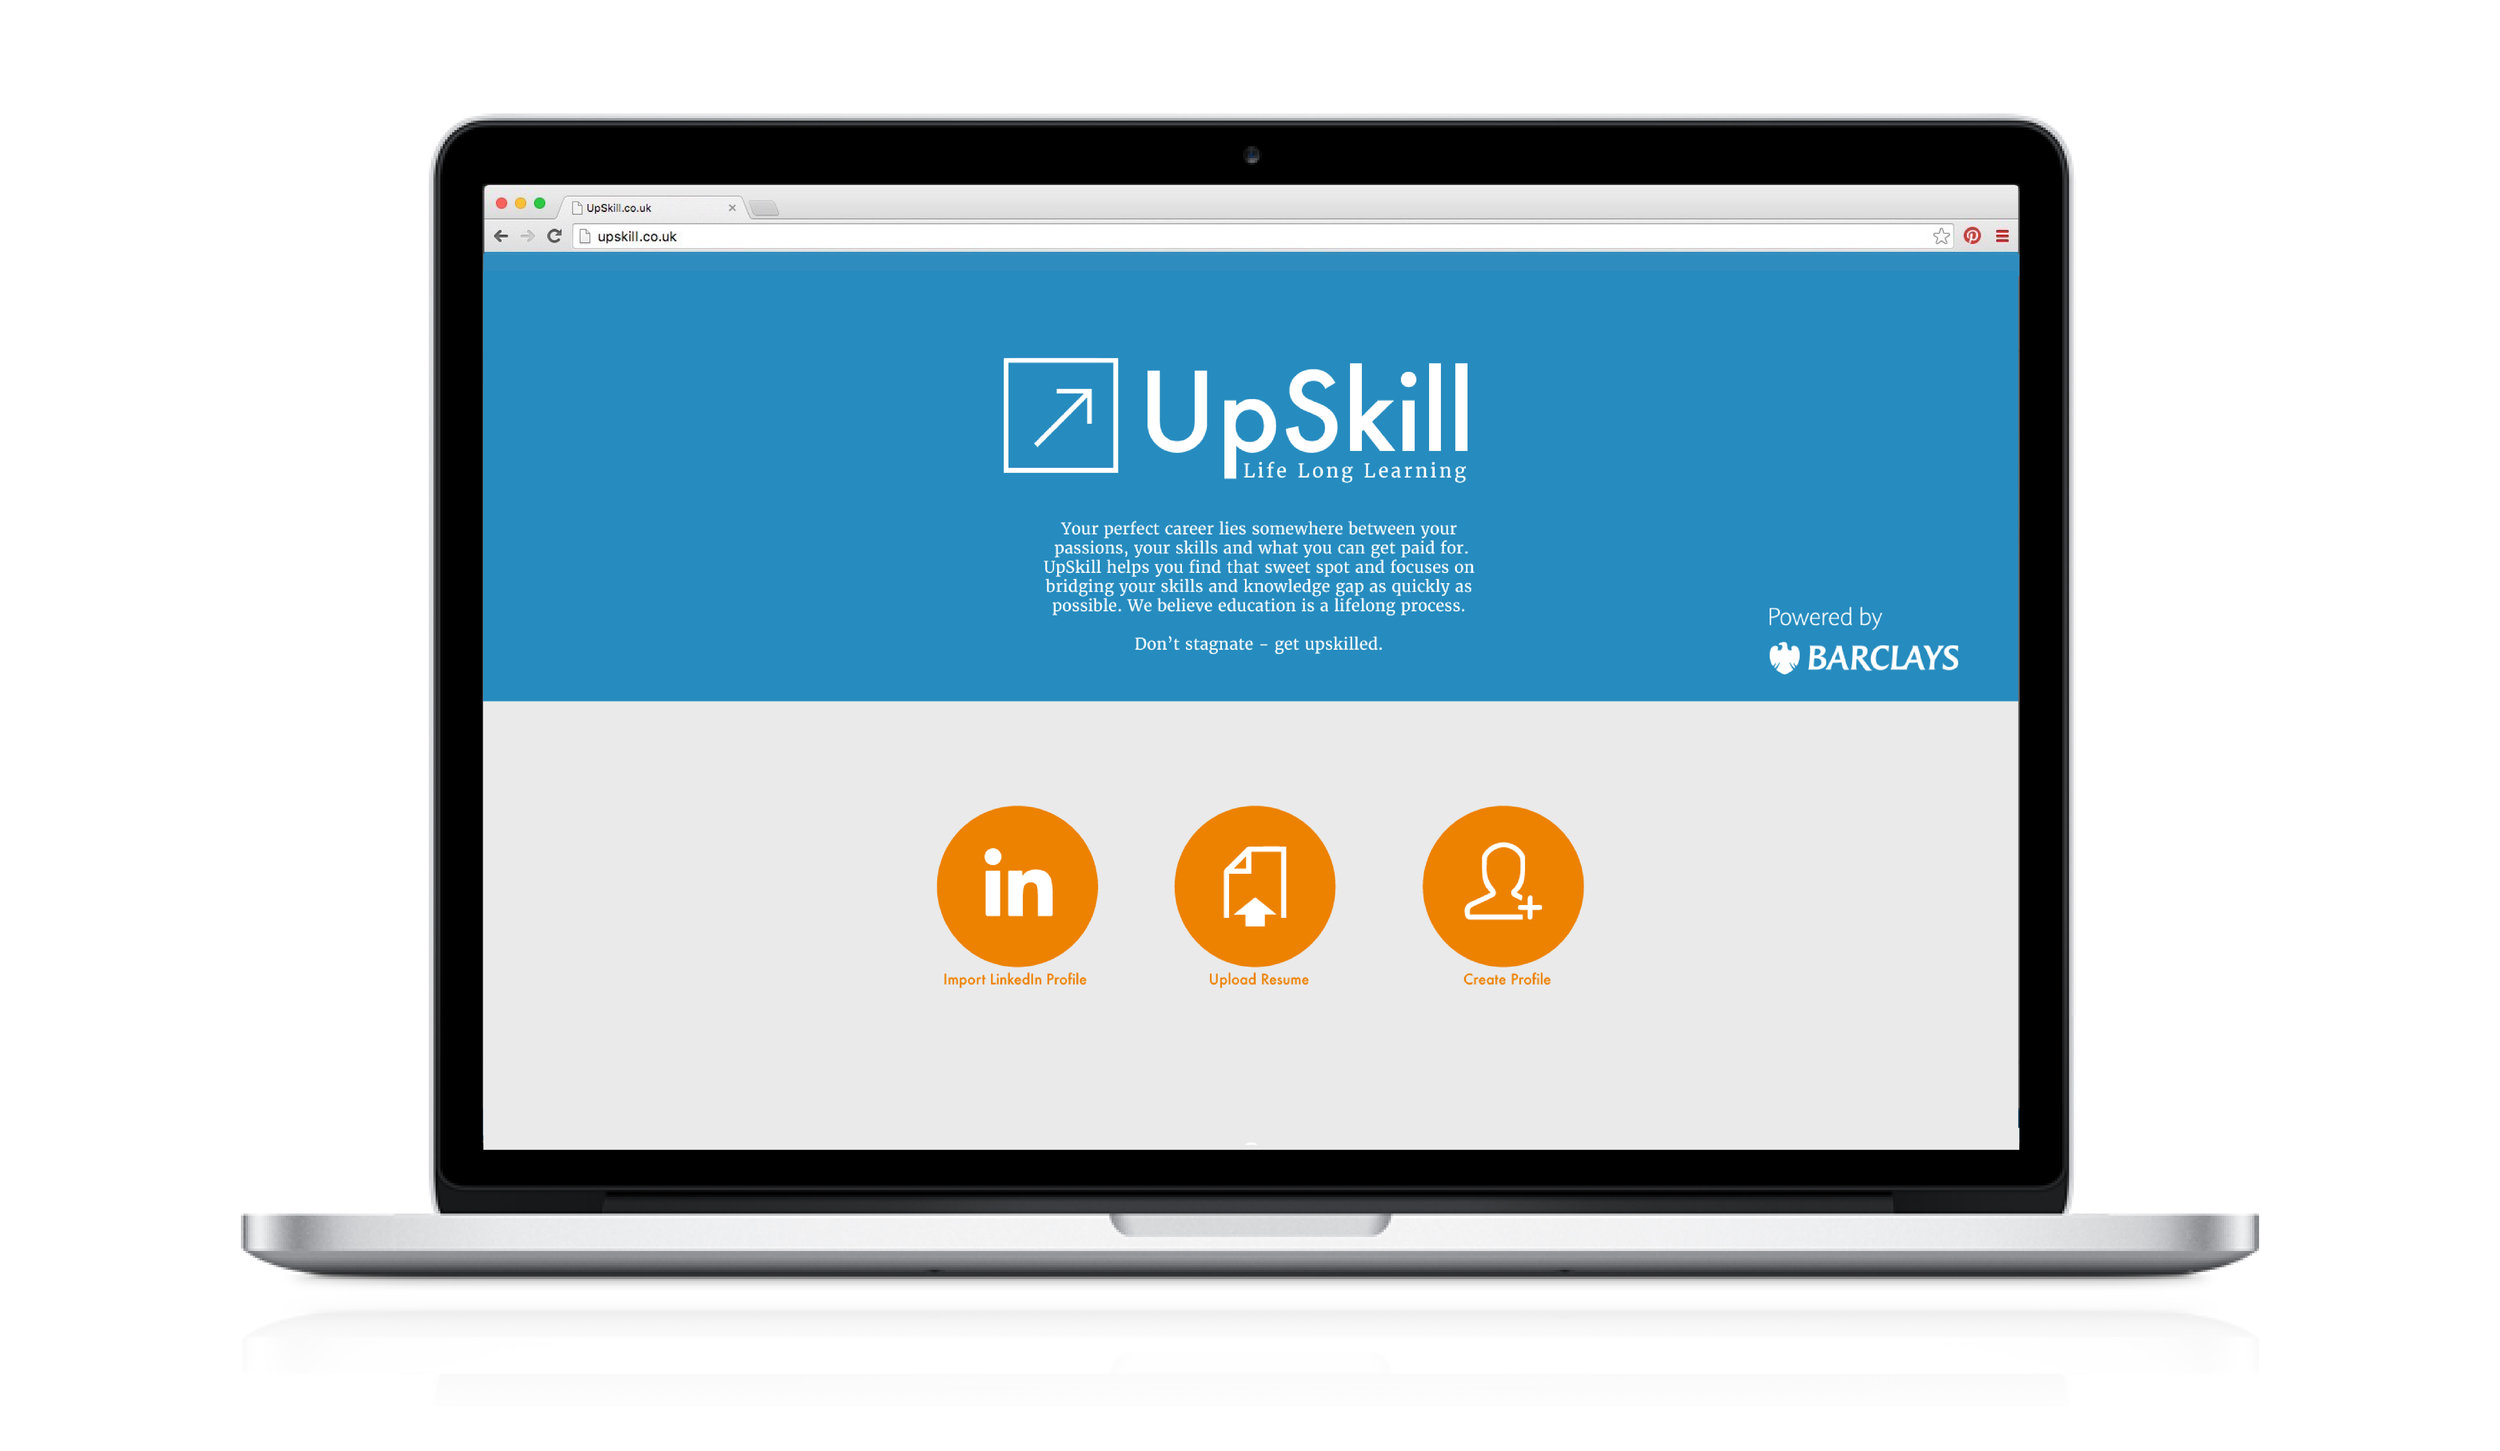 Firstly, UpSkill needs to form a profile of the user. This assesses their education and employment backgrounds, career aspirations and any other skills the user may have.